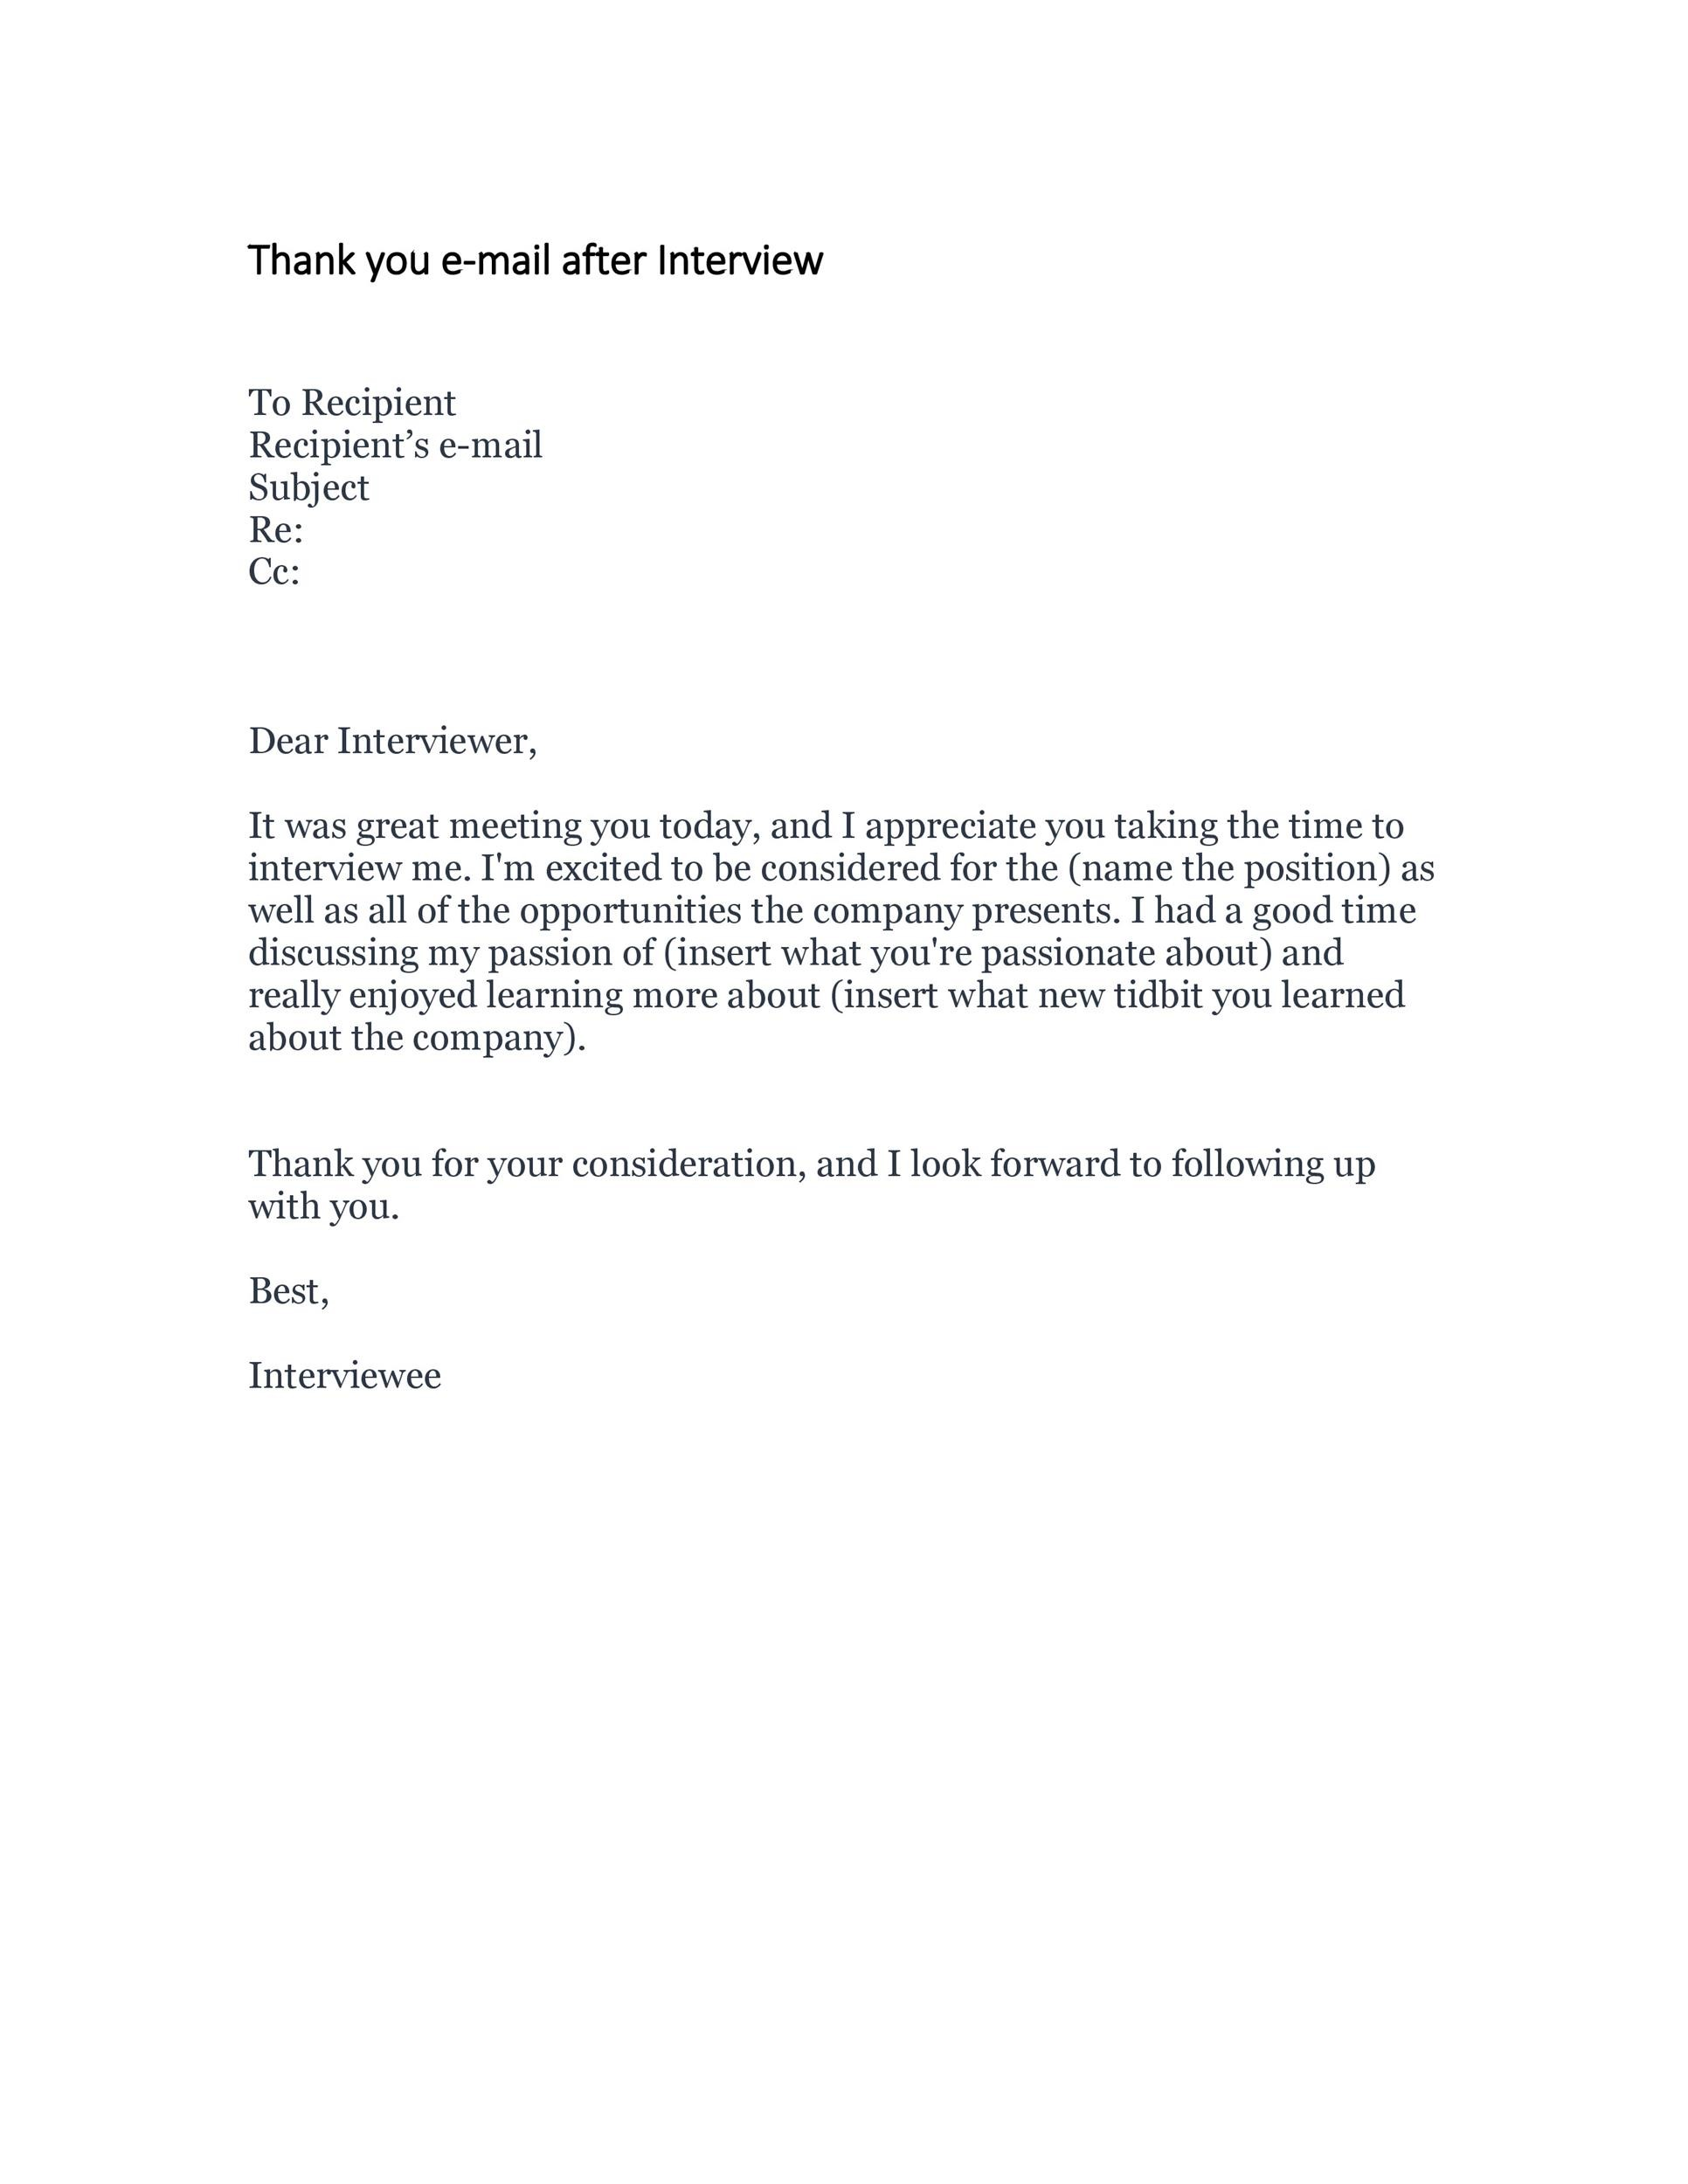 Free Thank you e-mail after Interview Template 32